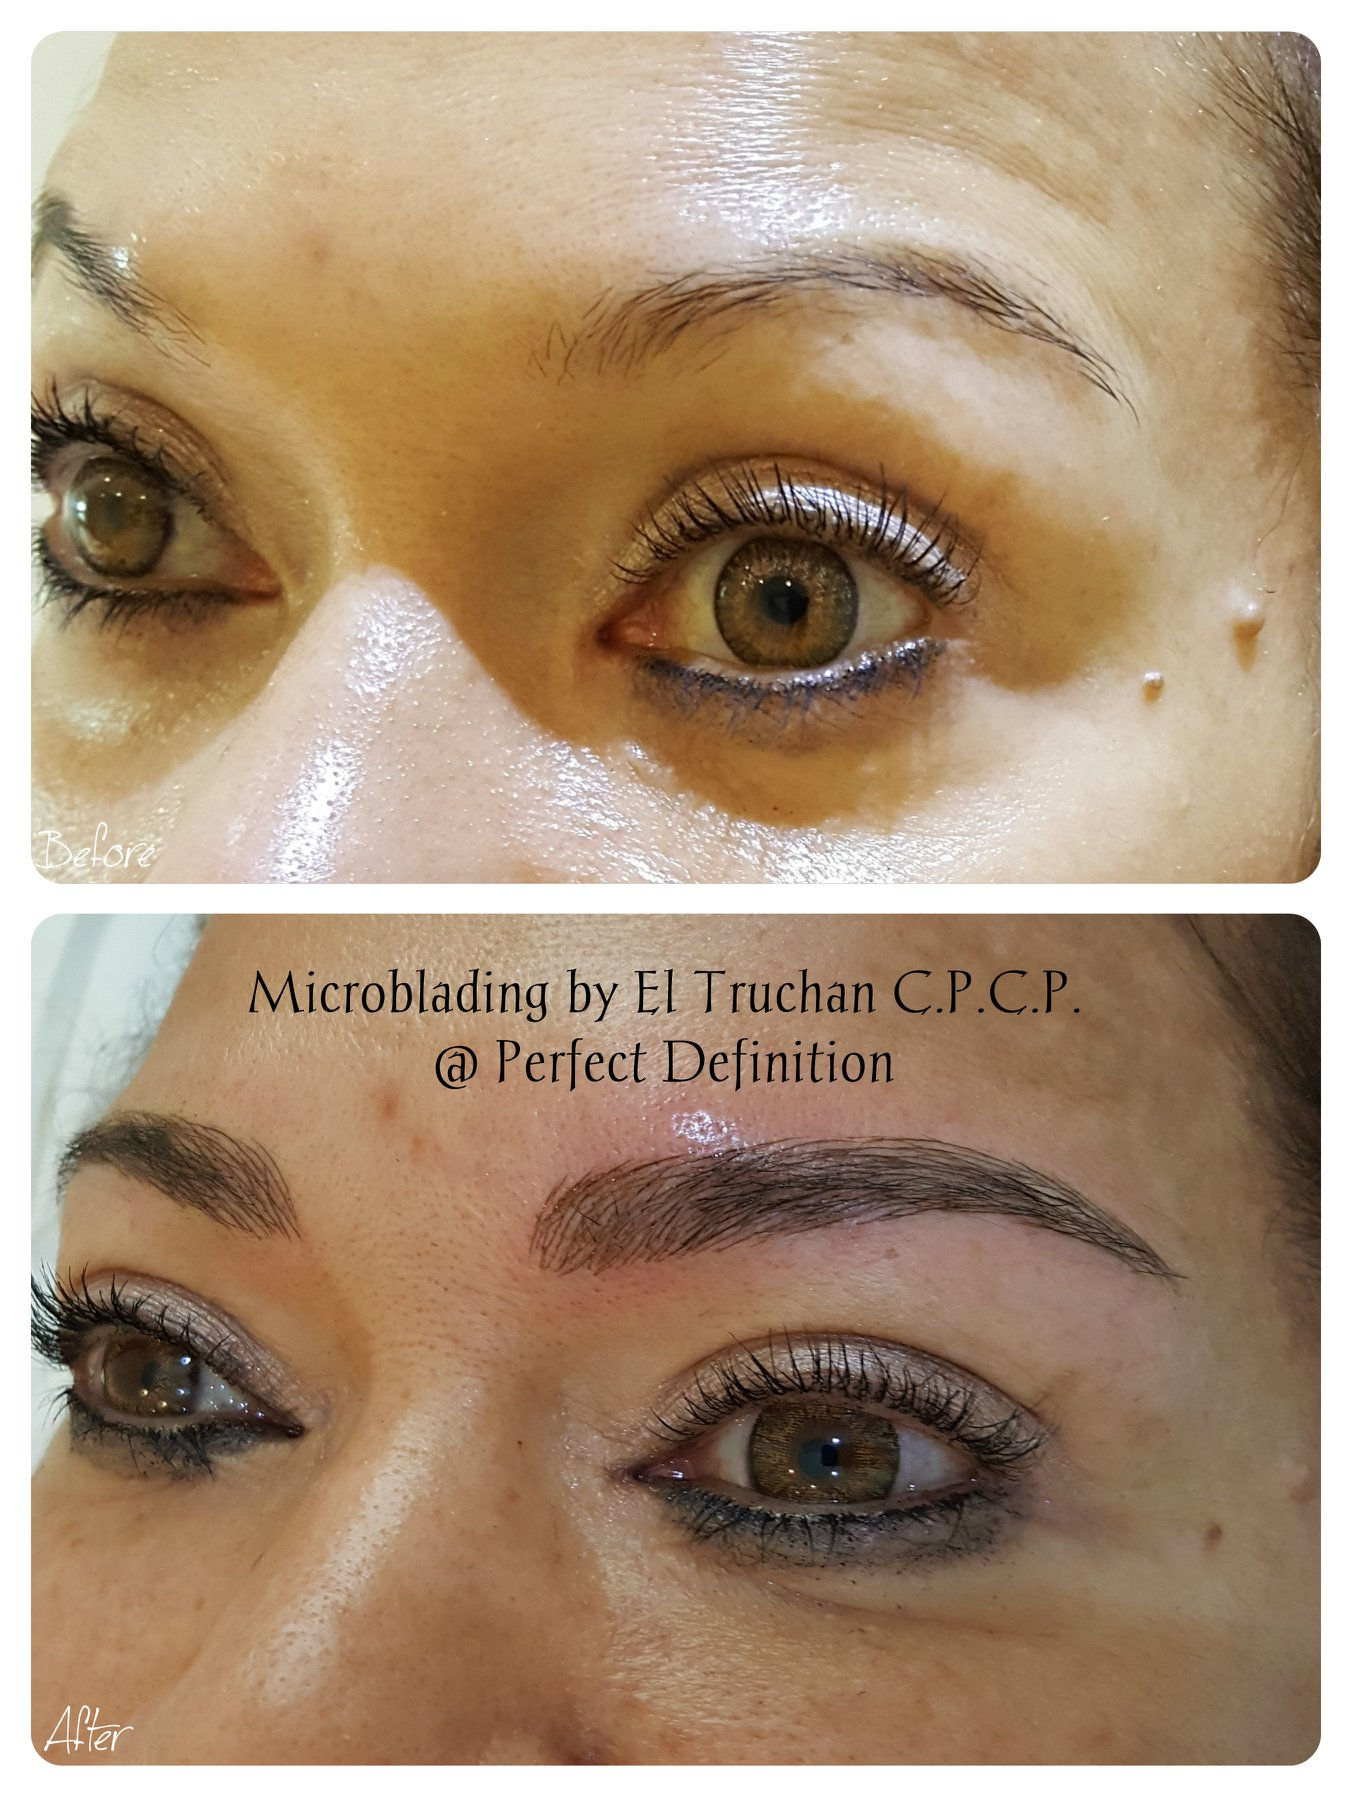 Microbladed Eyebrows by El Truchan @ Per